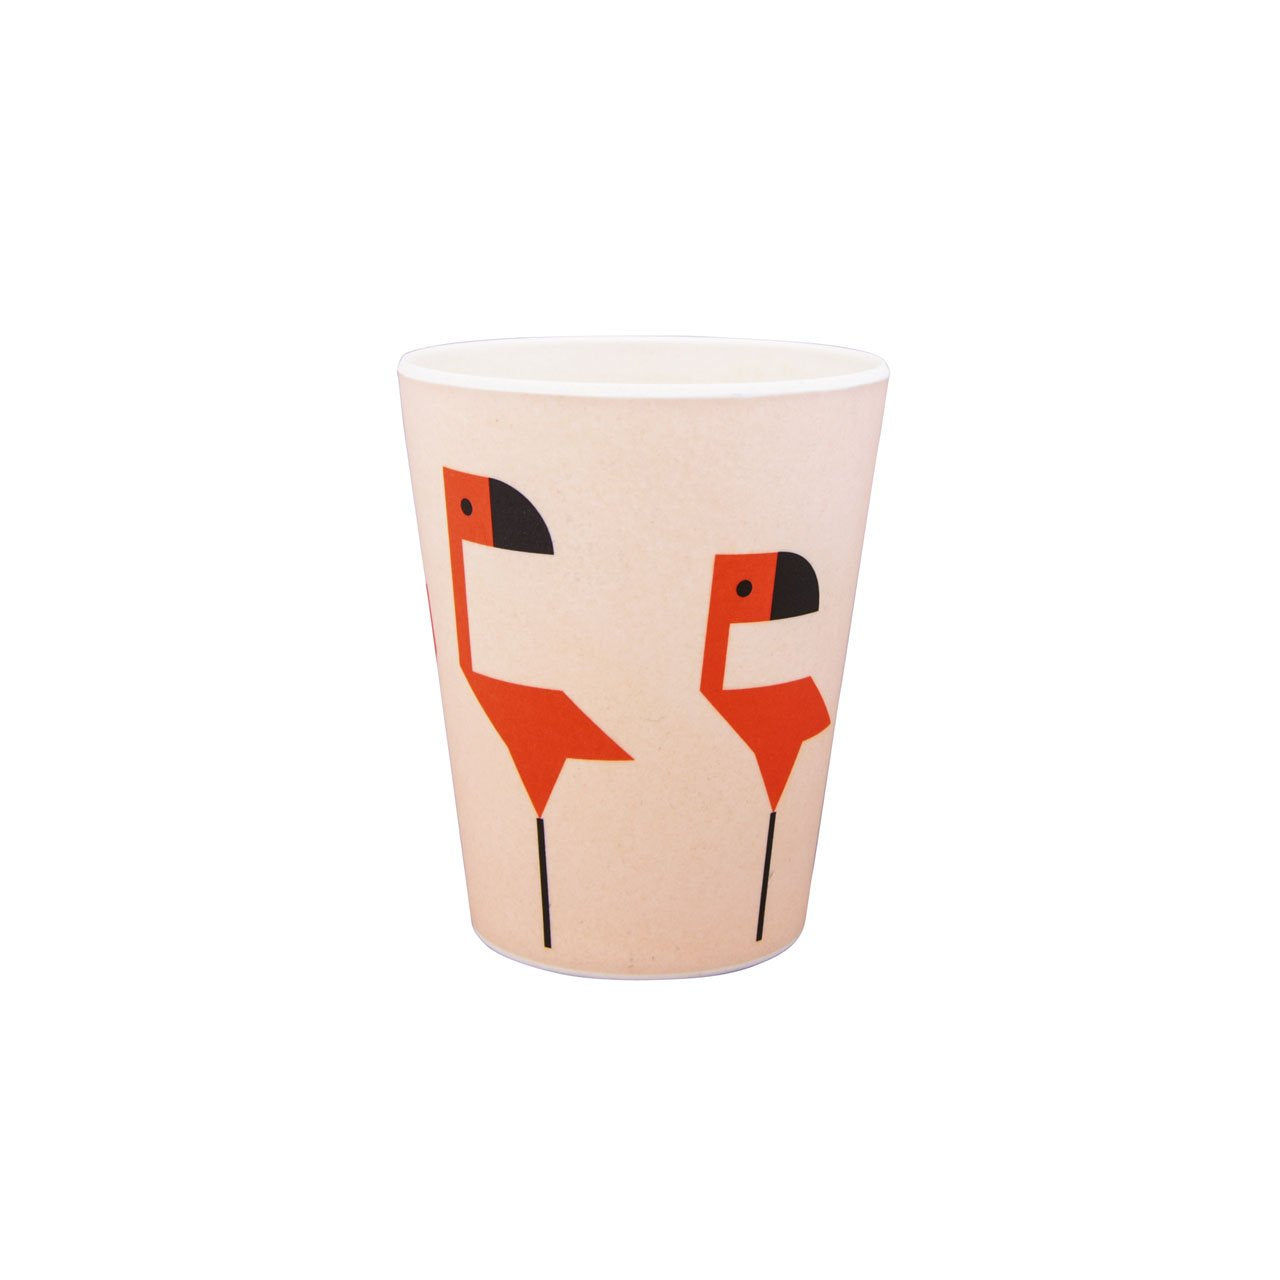 Flamingo Bamboo Plate & Cup set